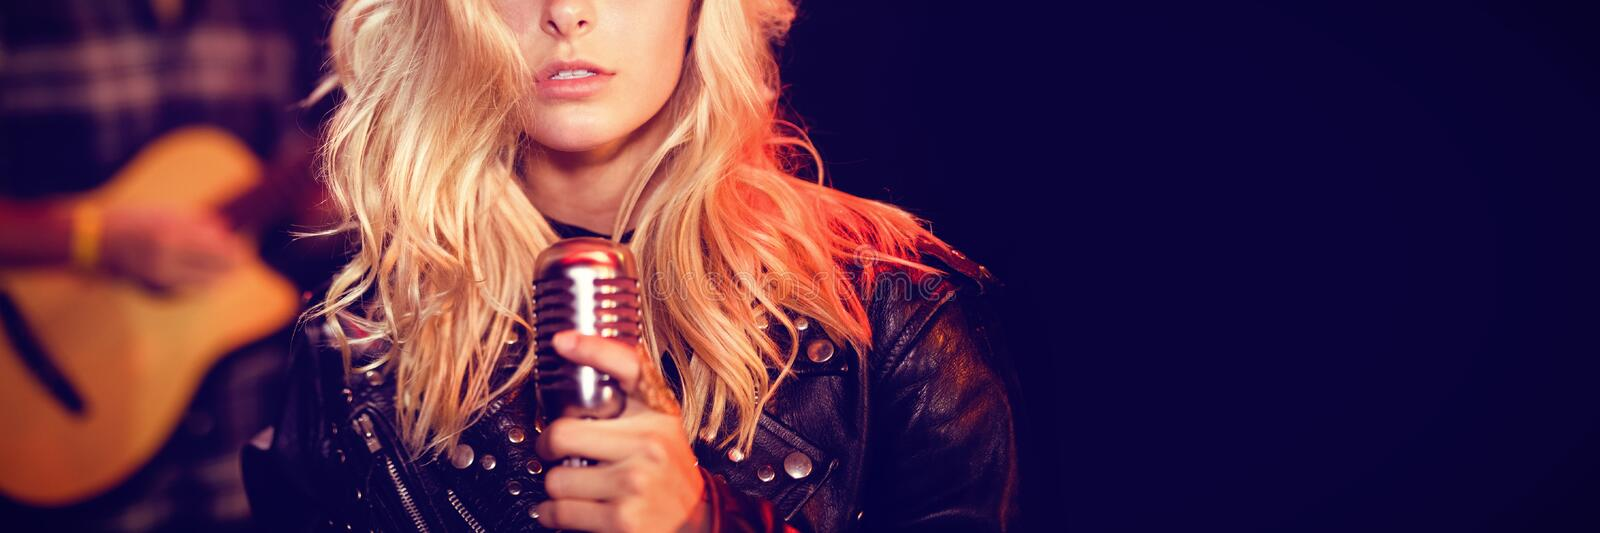 Portrait of female singer with blond hair. At concert in nightclub royalty free stock image